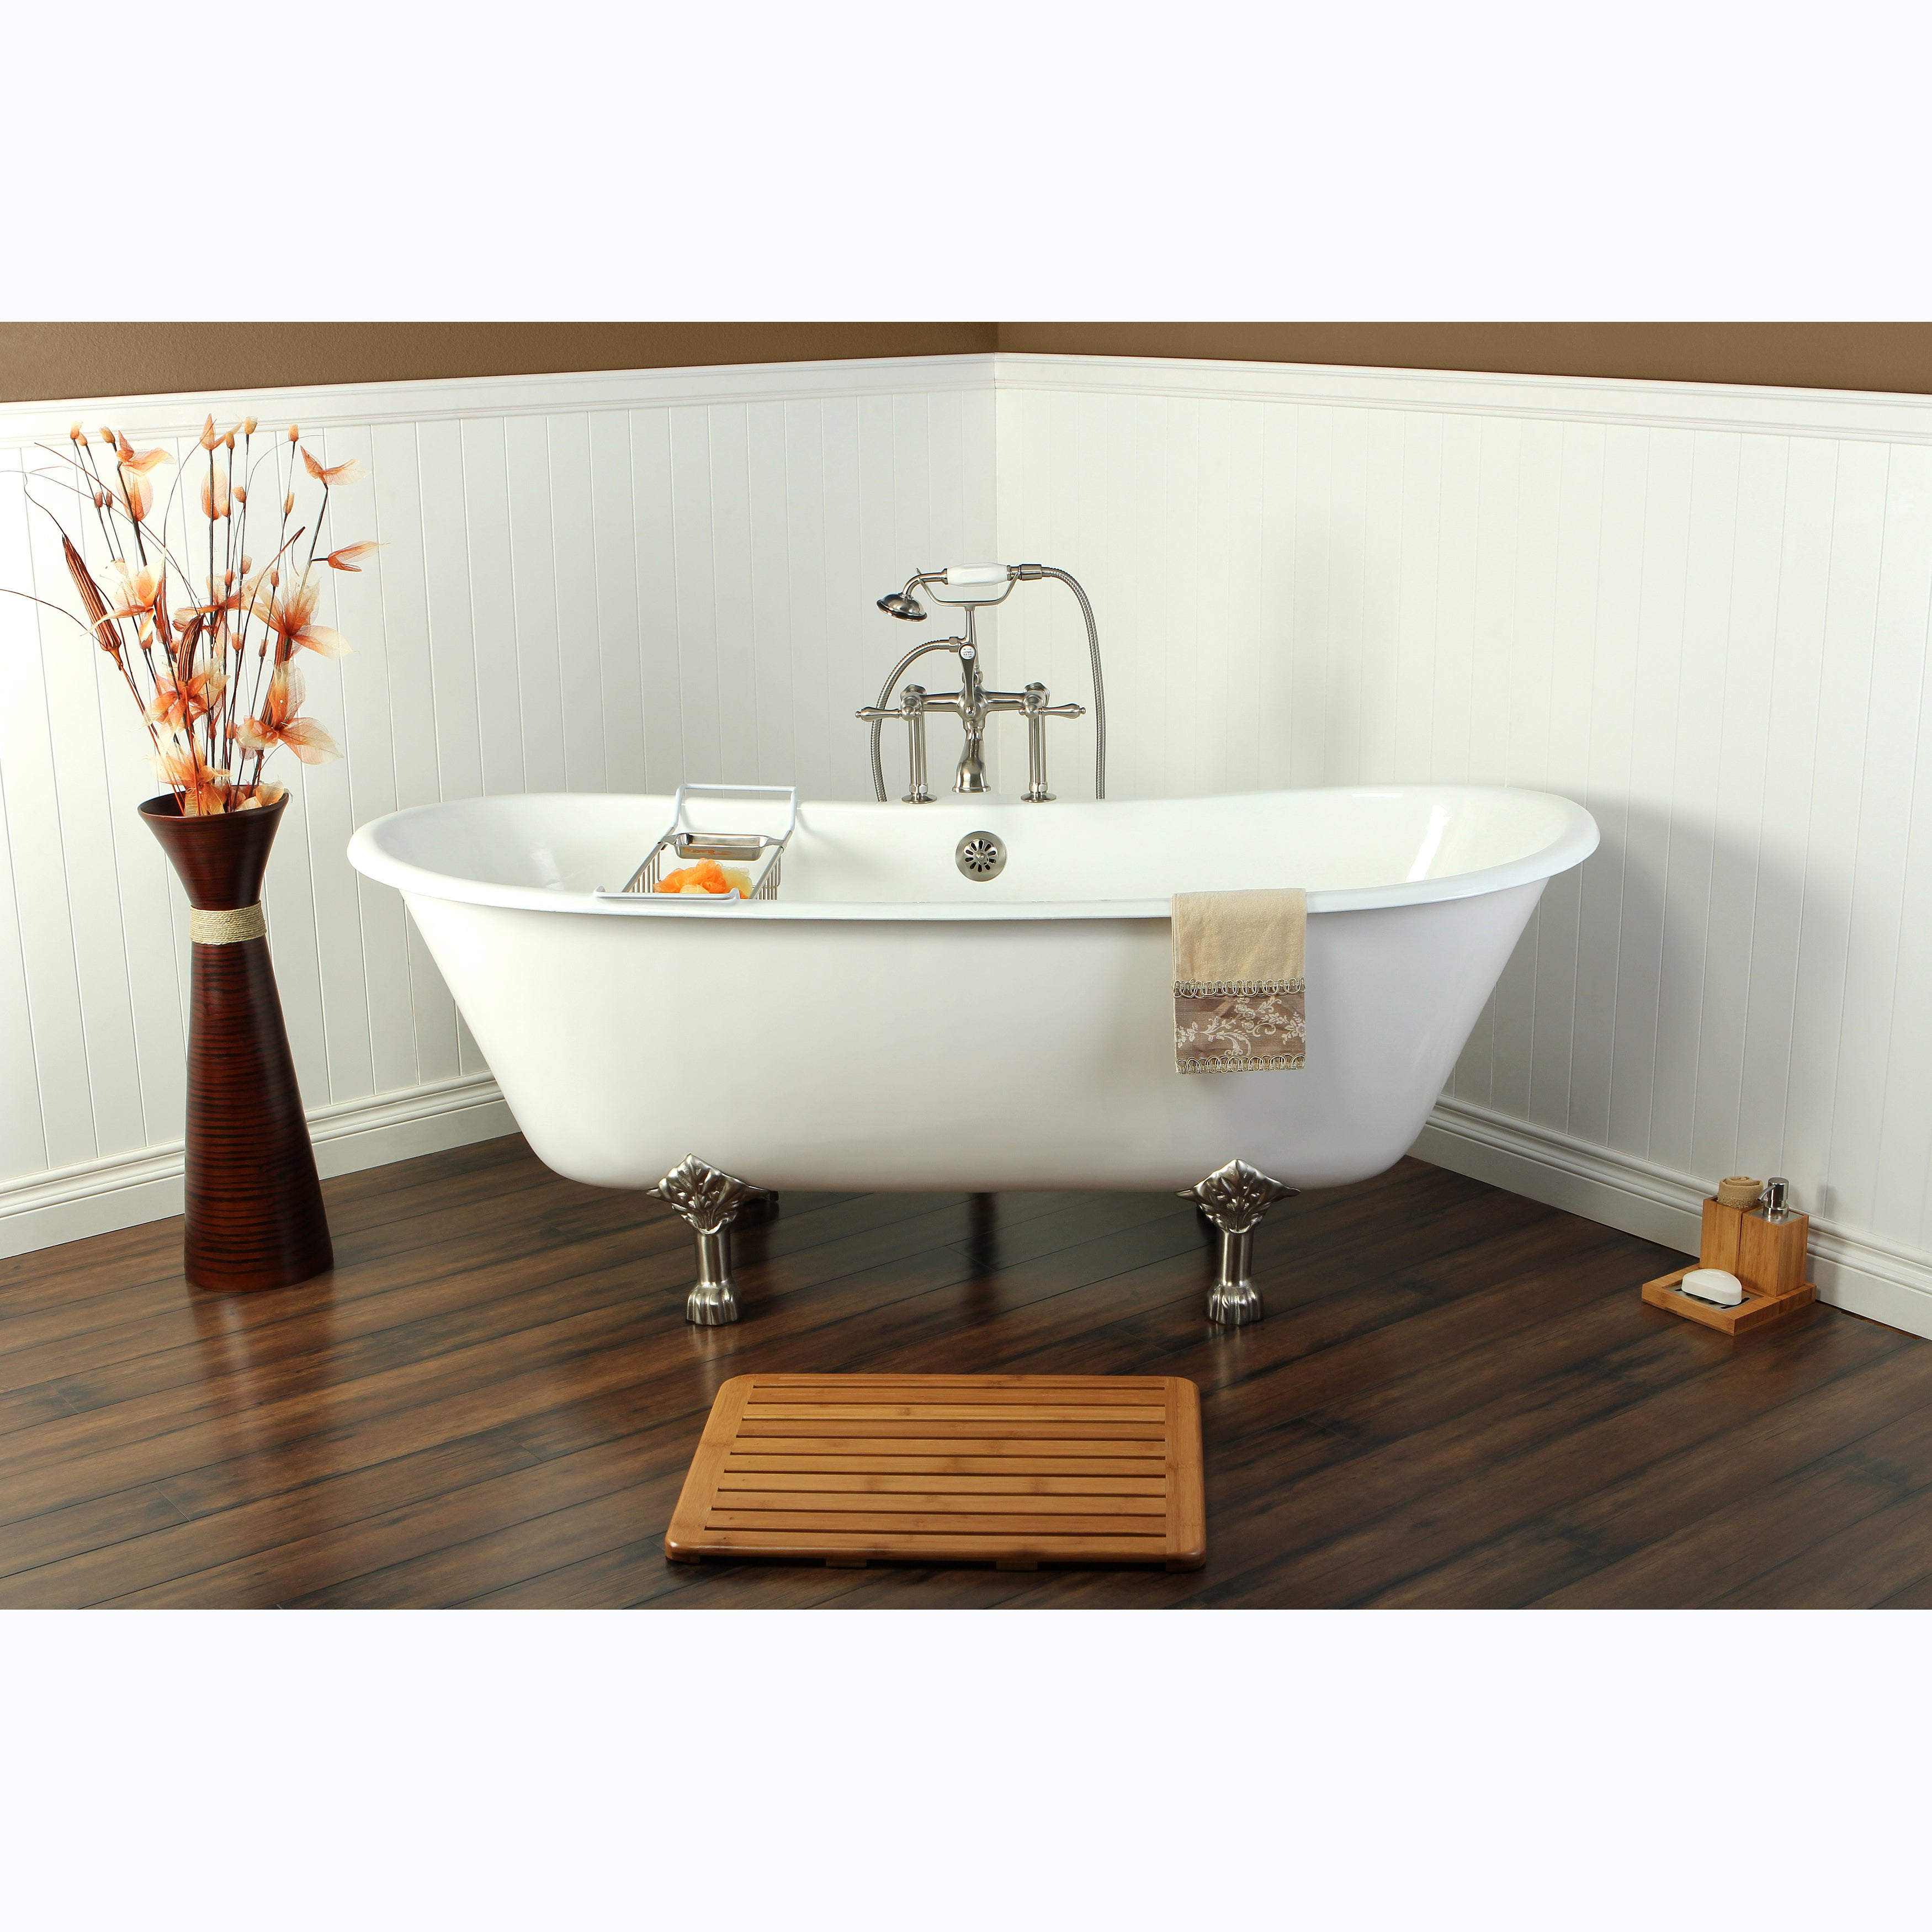 Shop 67-inch Cast Iron Double Slipper Clawfoot Bathtub - Free ...